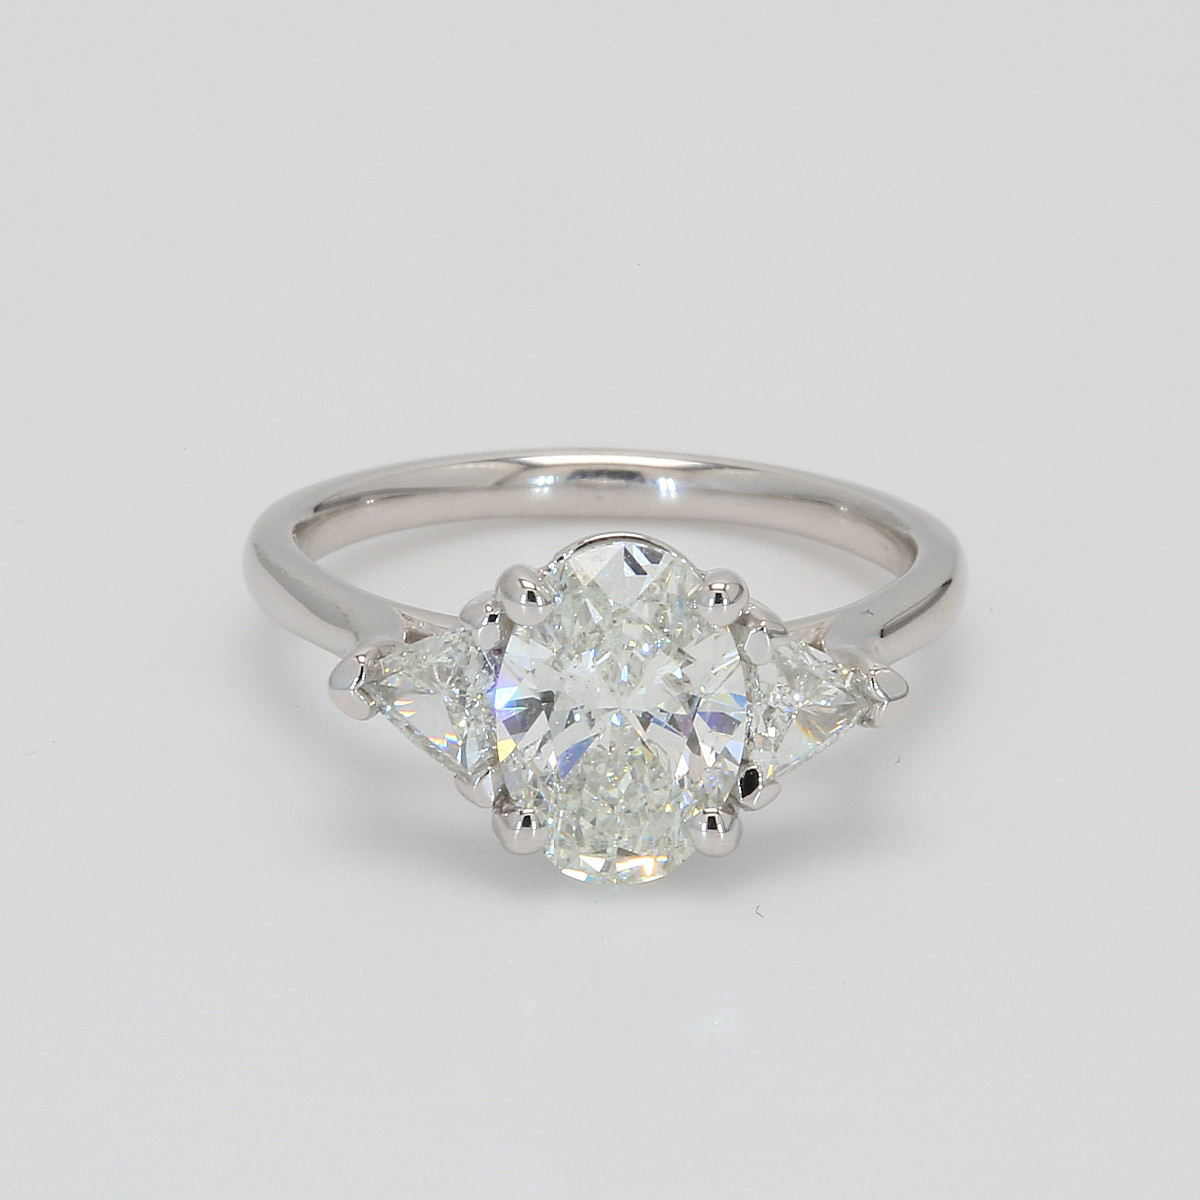 1.86 CT Oval and Trillion Engagement Ring